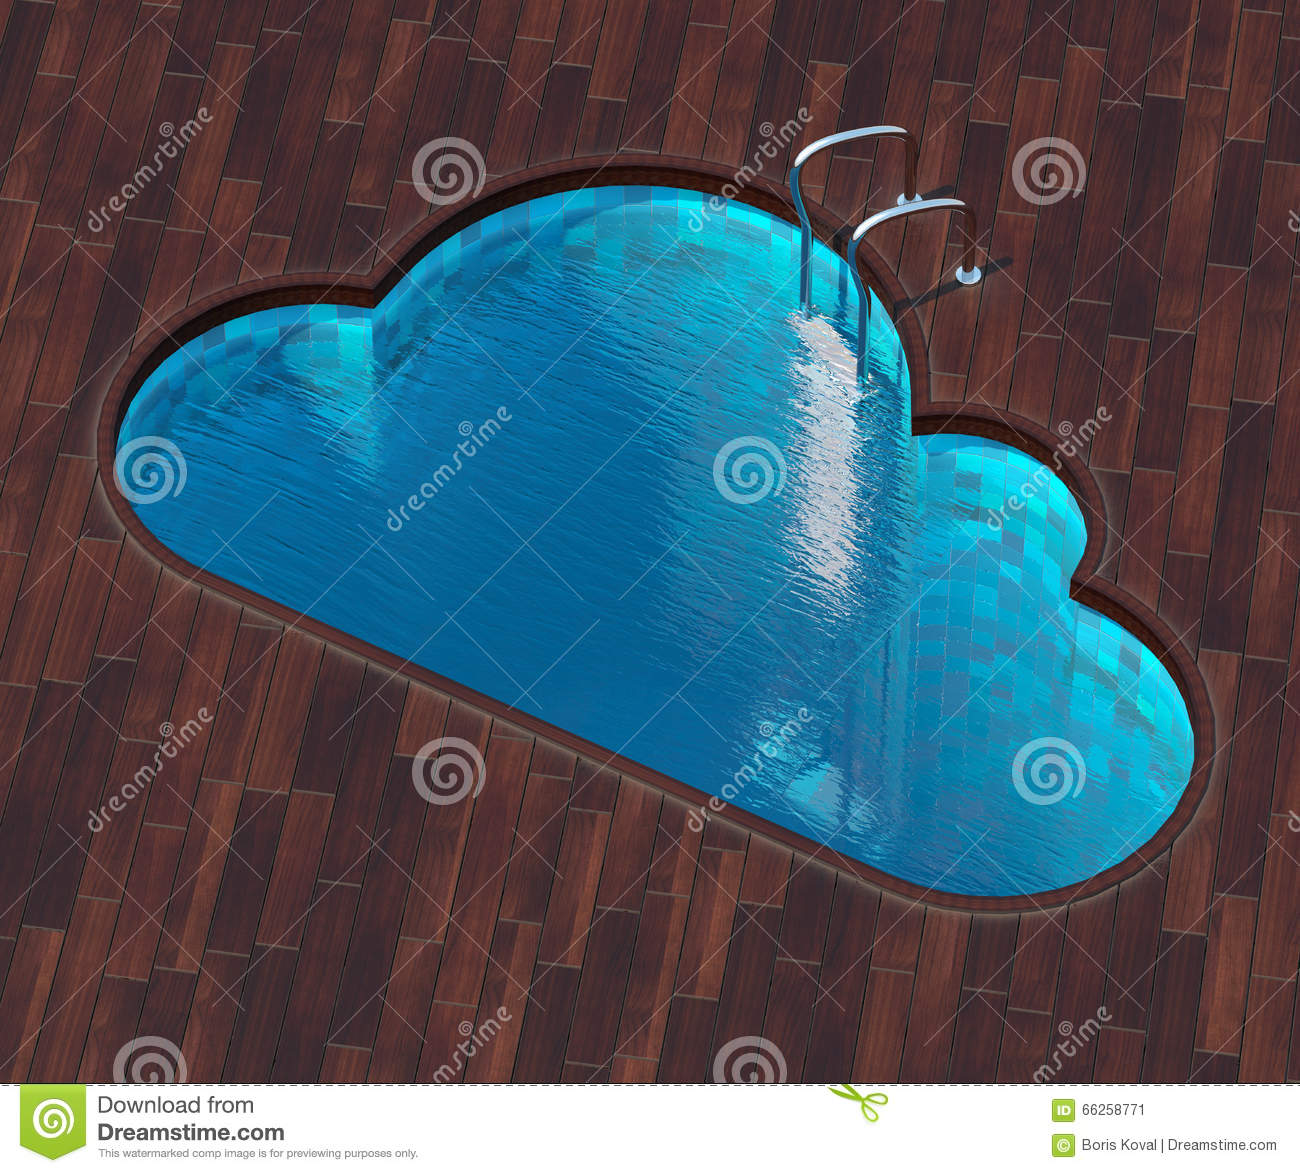 Cool Shaped Pools: Shaped Pool Cloud Stock Illustration. Image Of Network